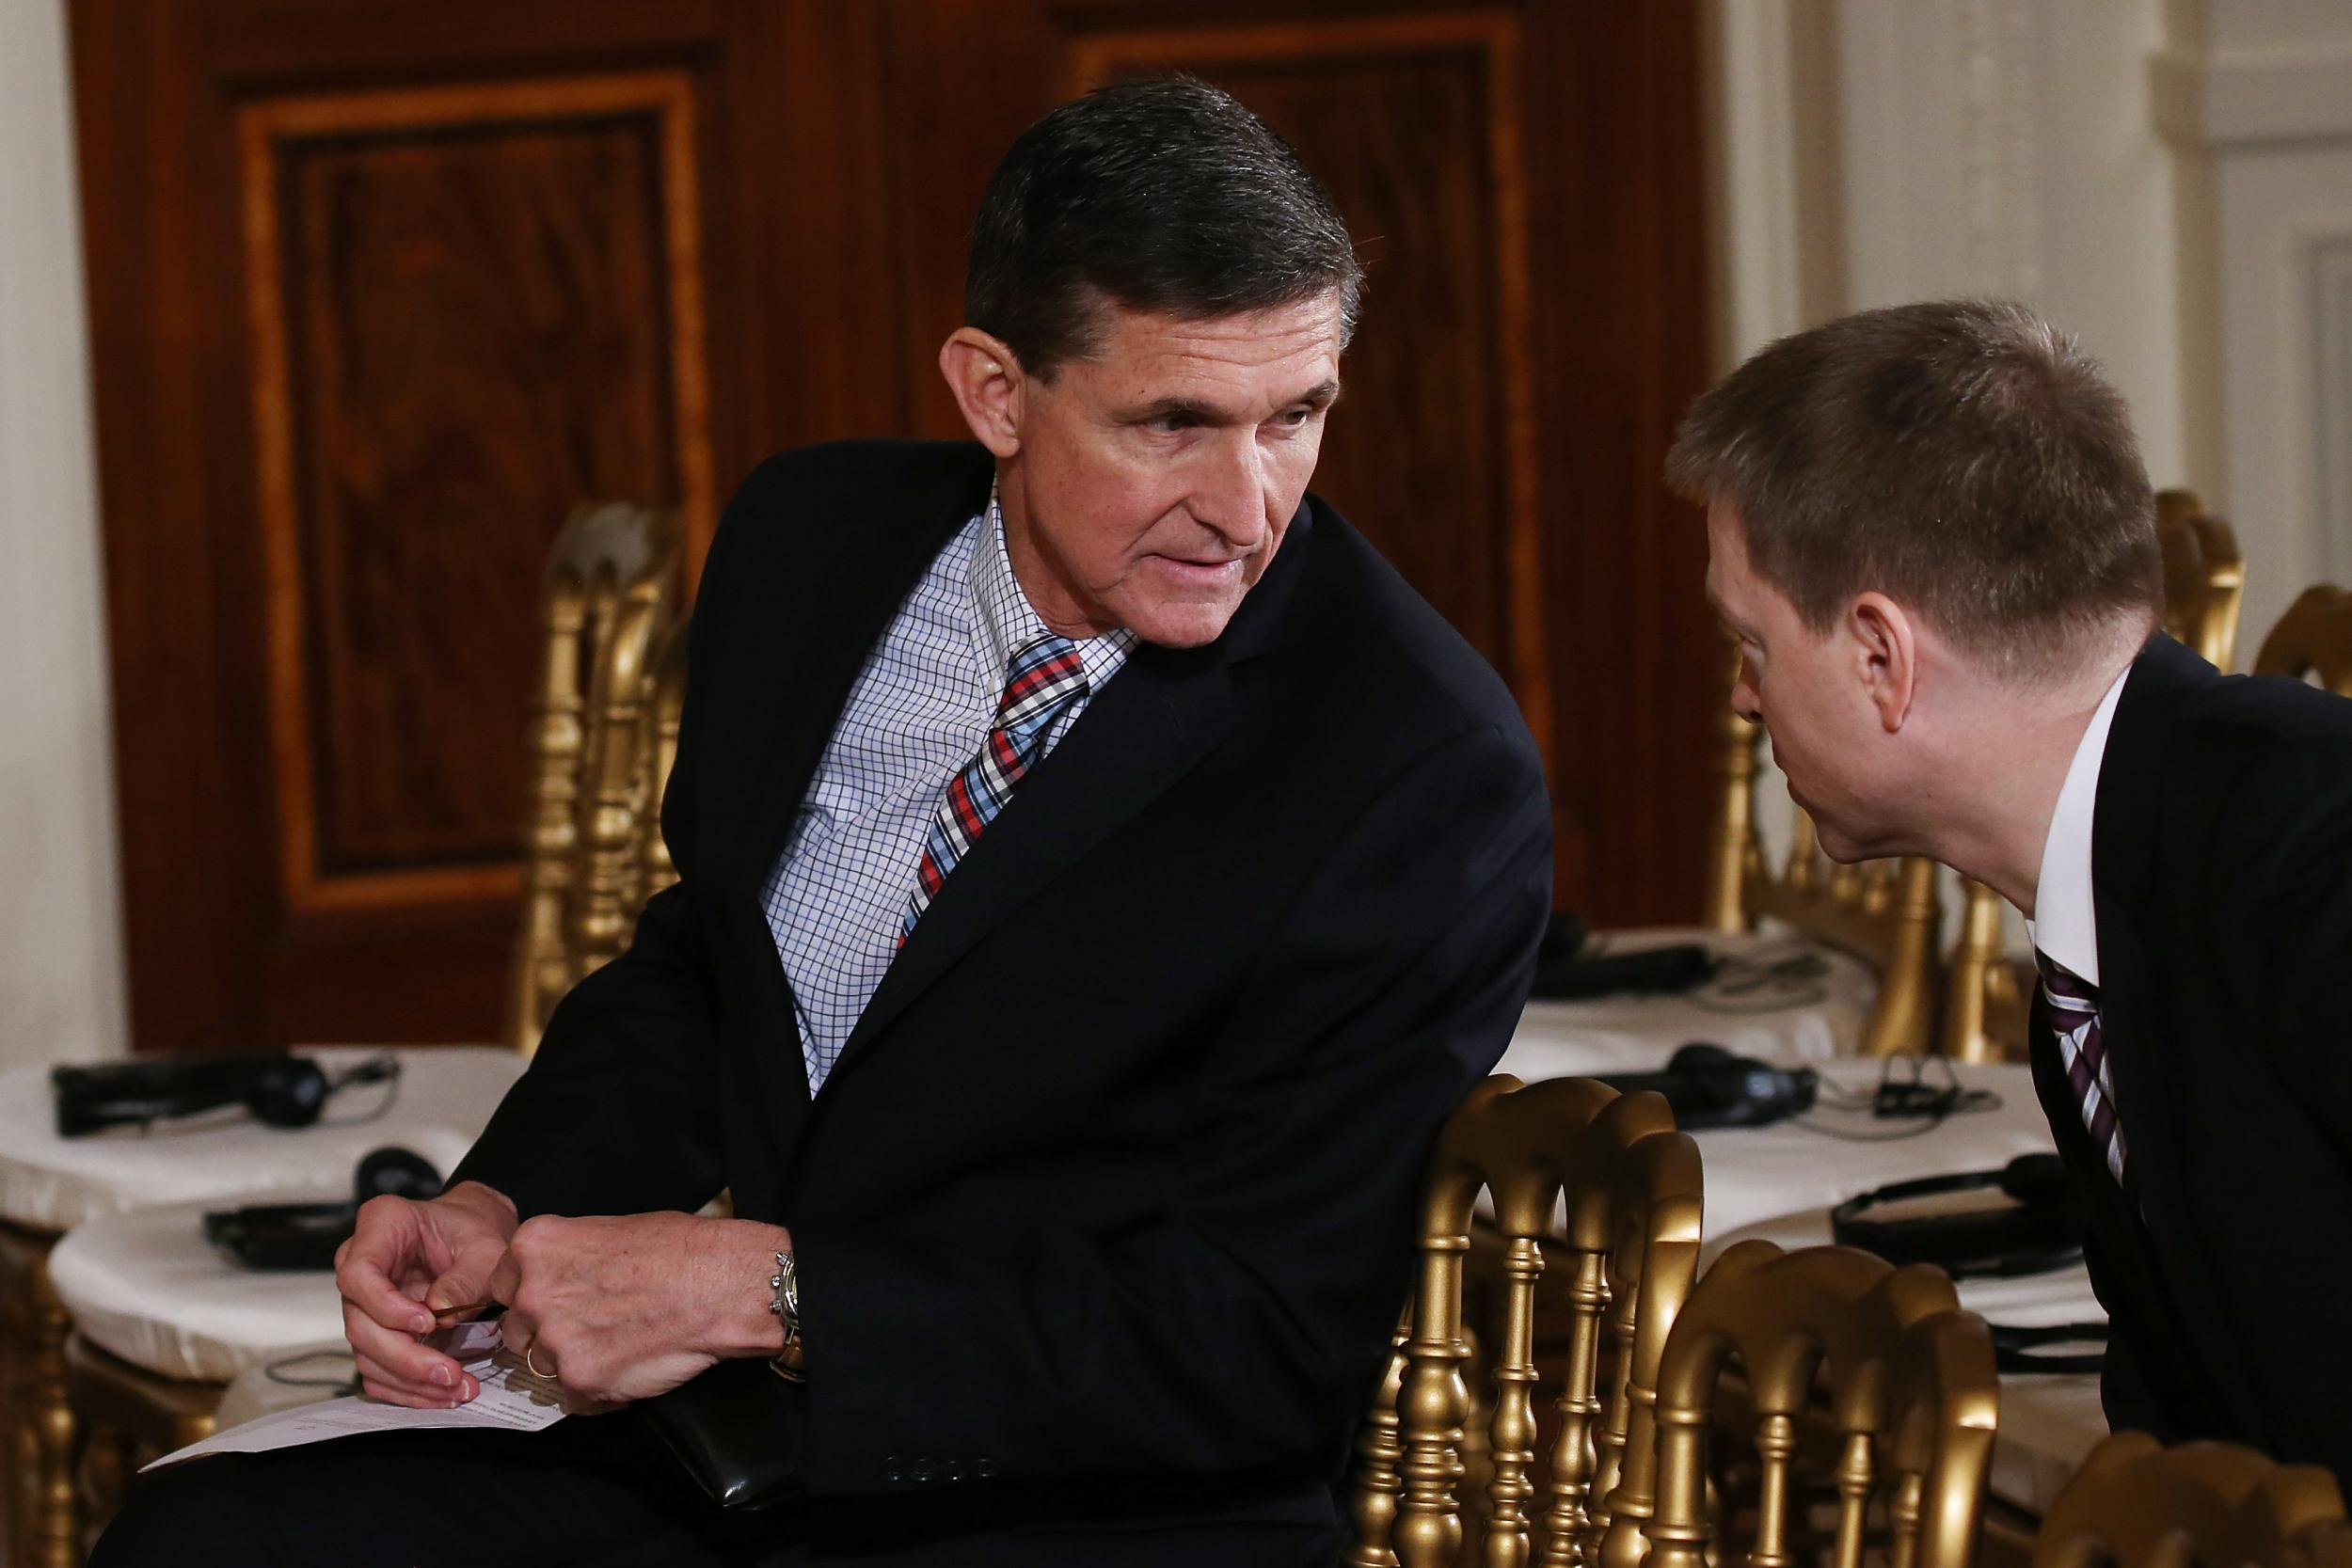 Michael Flynn reportedly cuts ties with Trump, suggesting 'potential co-operation' with Robert Mueller